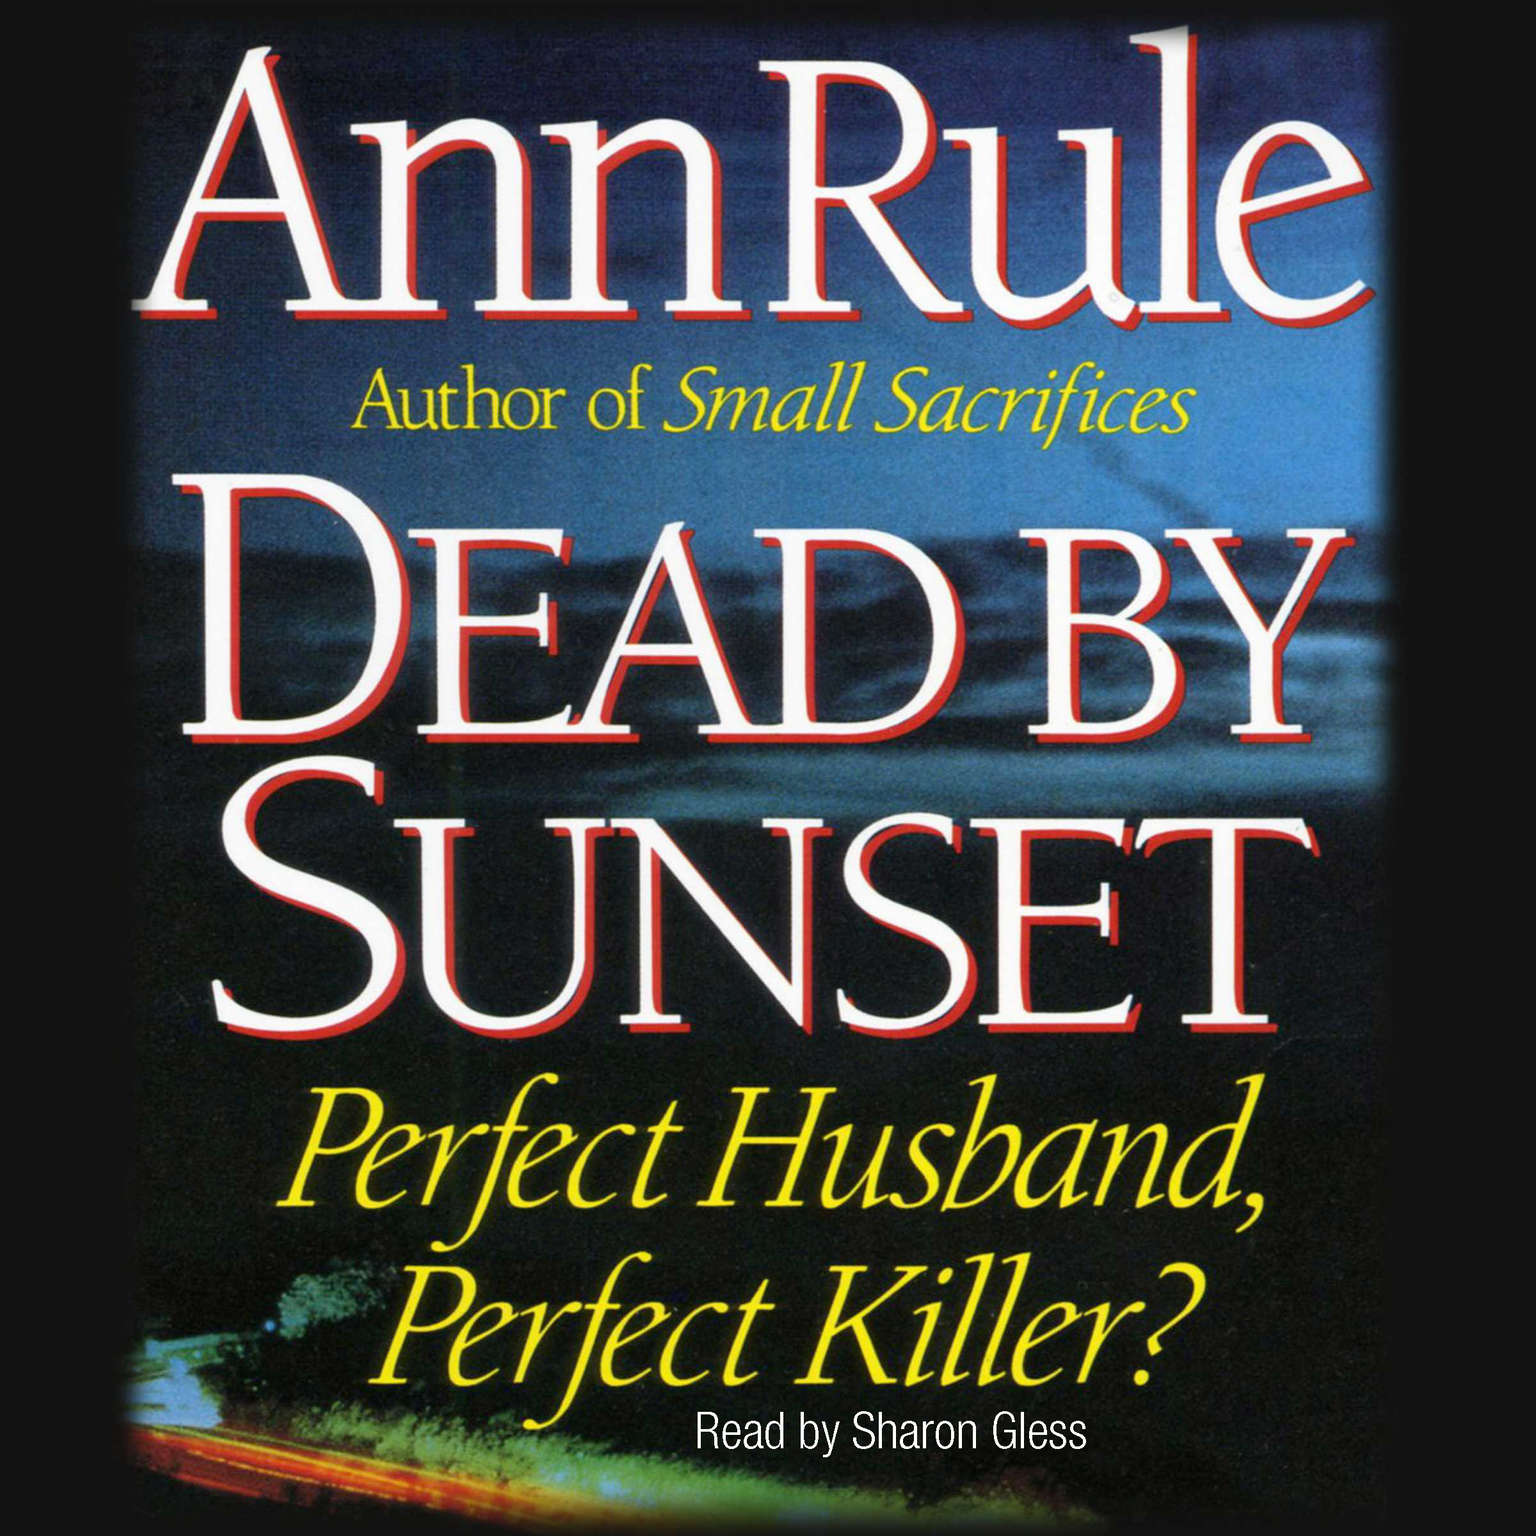 Printable Dead by Sunset: Perfect Husband, Perfect Killer? Audiobook Cover Art